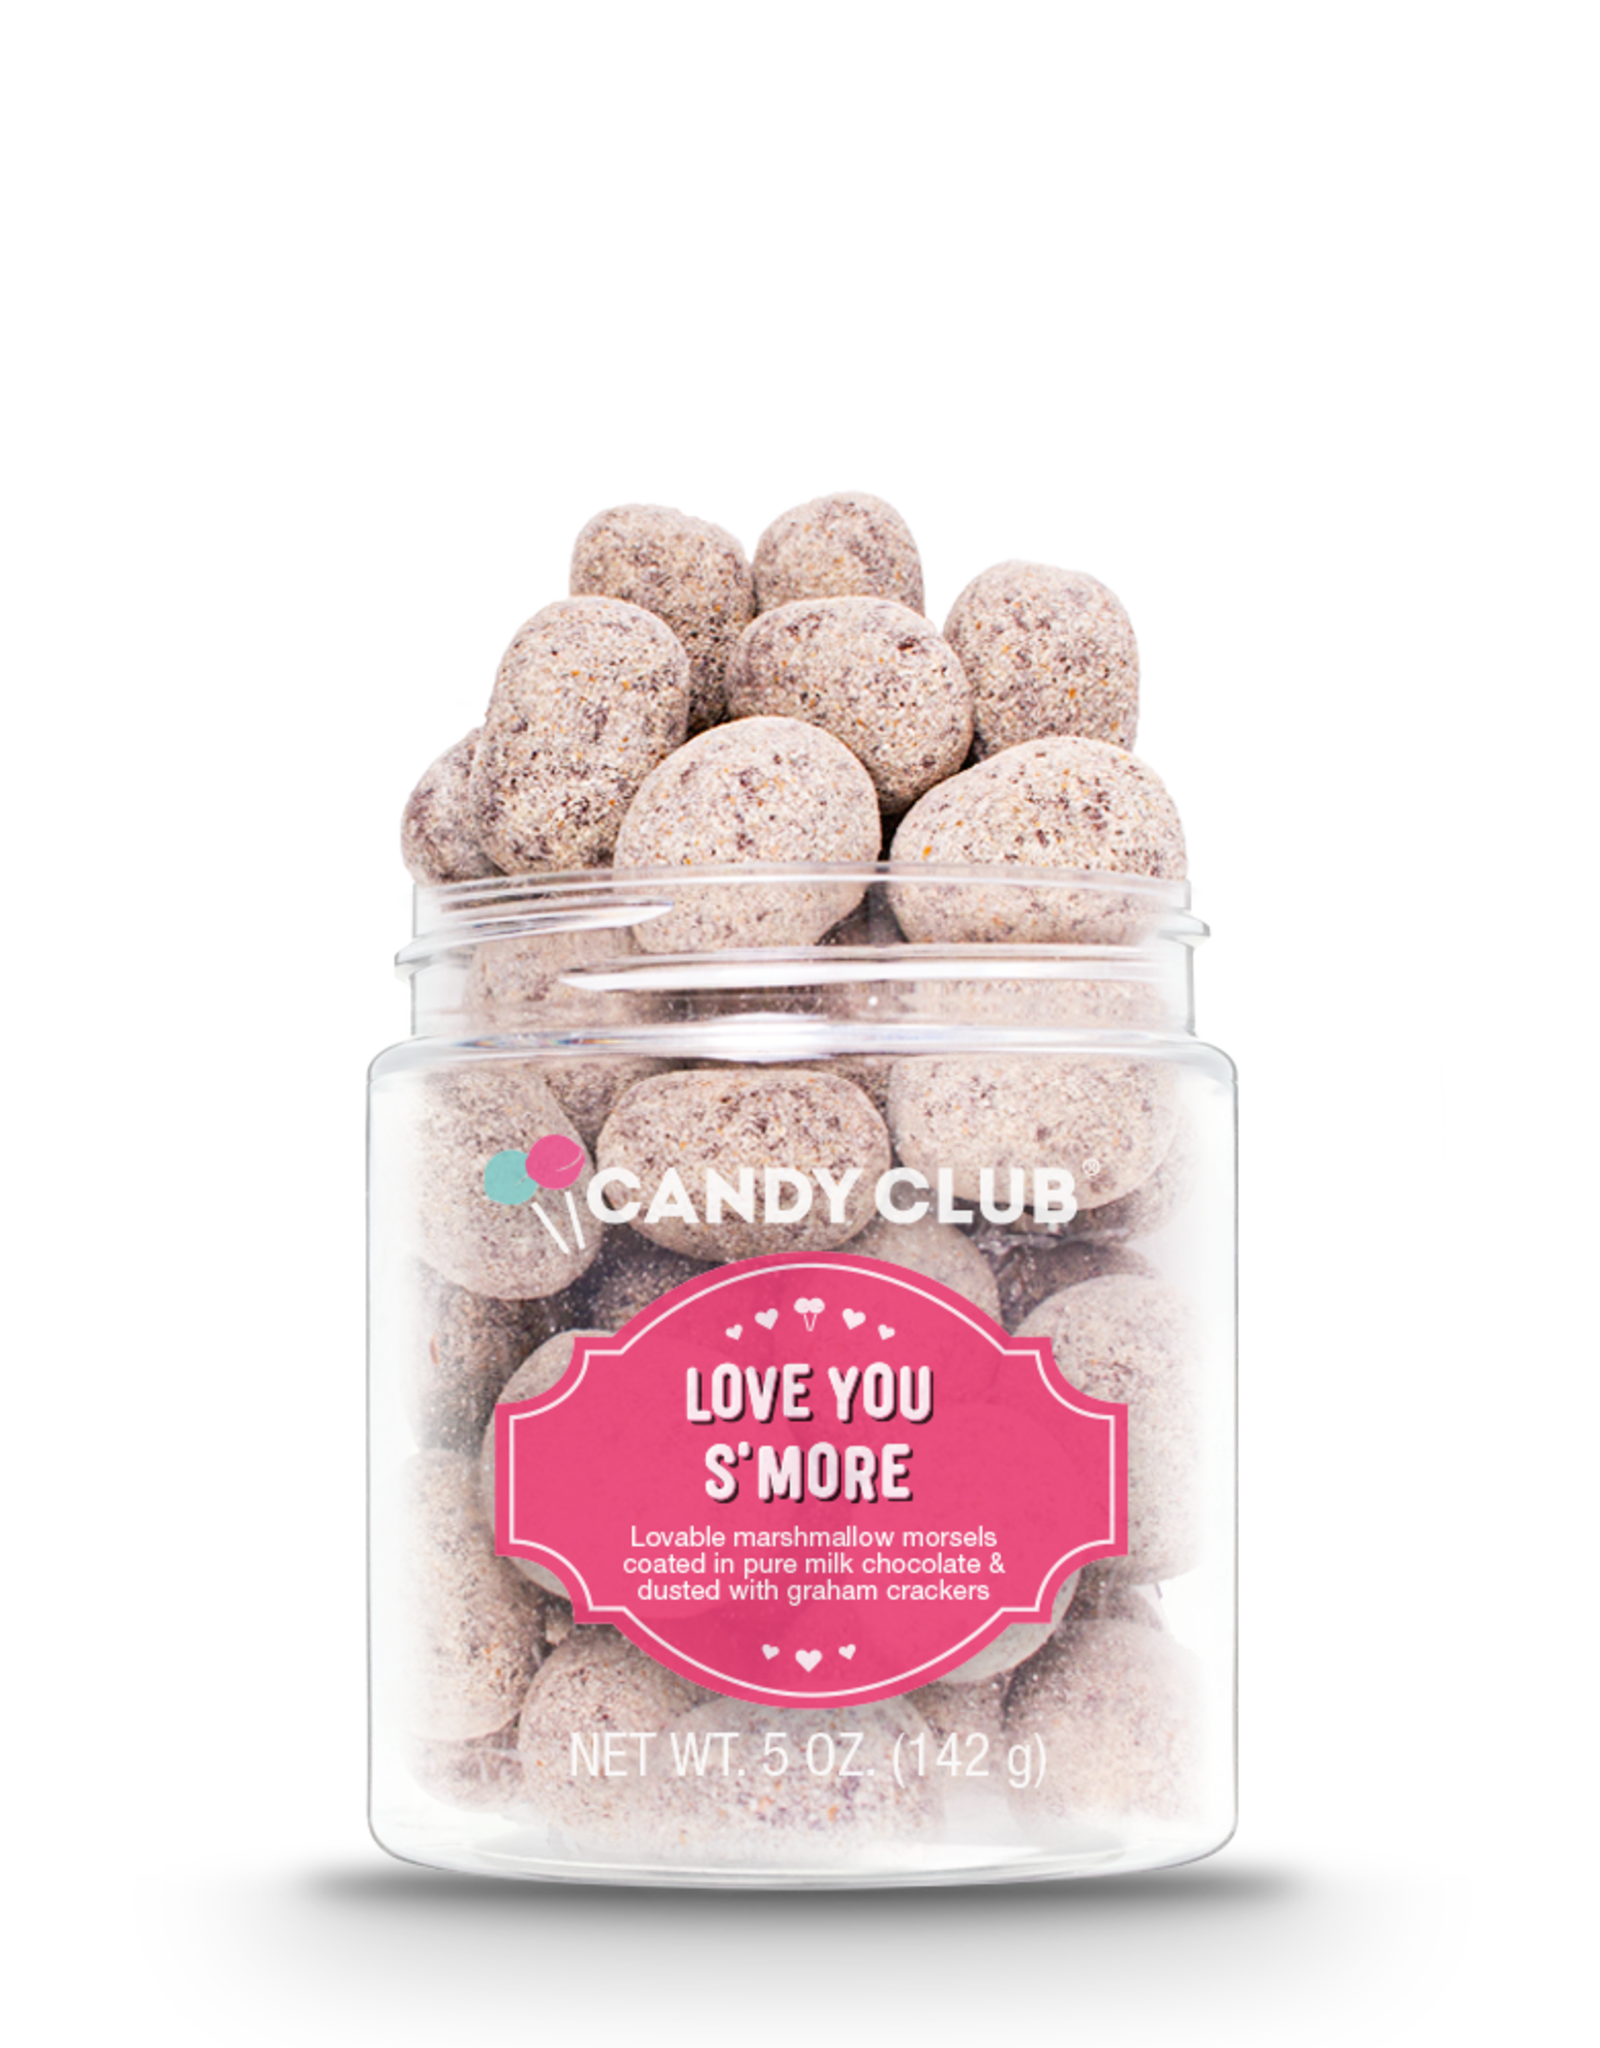 Candy Club Love You S'more